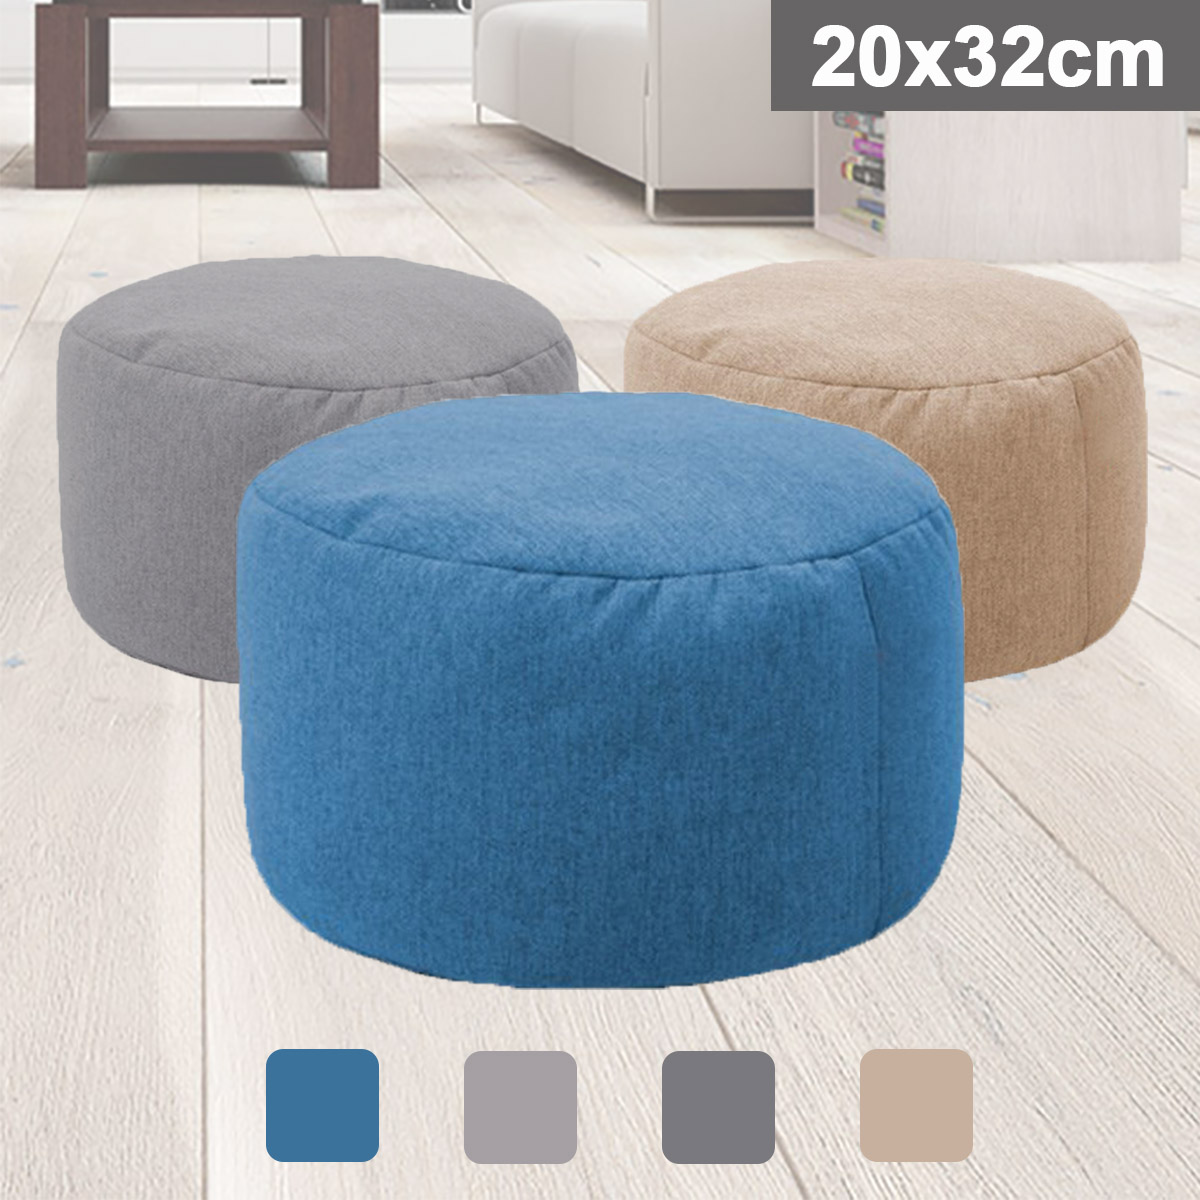 Incredible Details About Colors Bean Bag Cover Ottoman Footstool Round Stool Chair Cover Without Filling Lamtechconsult Wood Chair Design Ideas Lamtechconsultcom